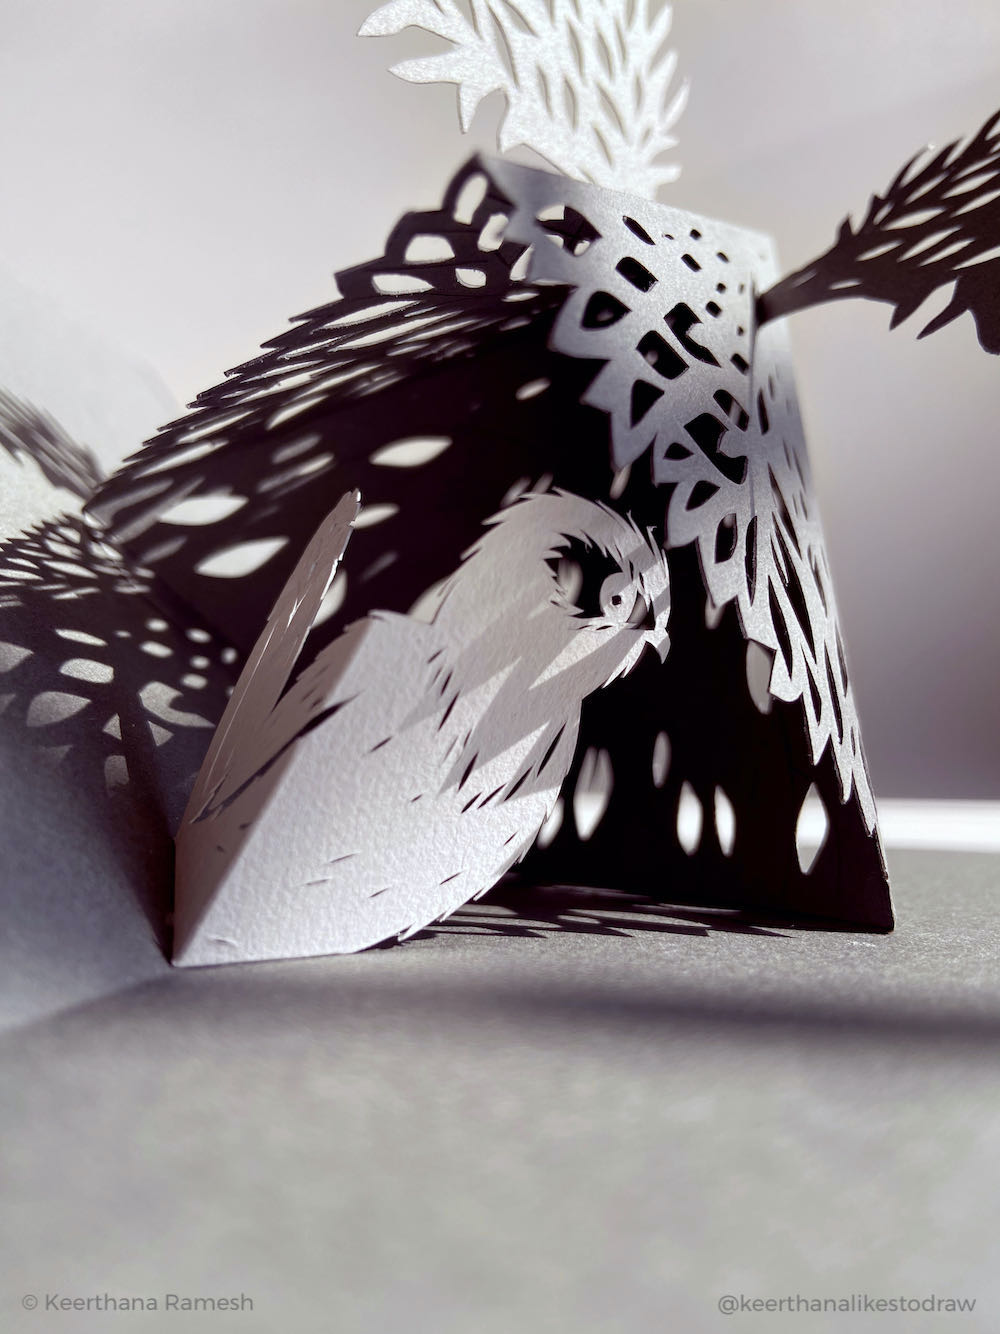 Thumbnail for The Lockdown Inspired Paper Artist Keerthana Ramesh to Create a Pop-Up Book About Endangered Species